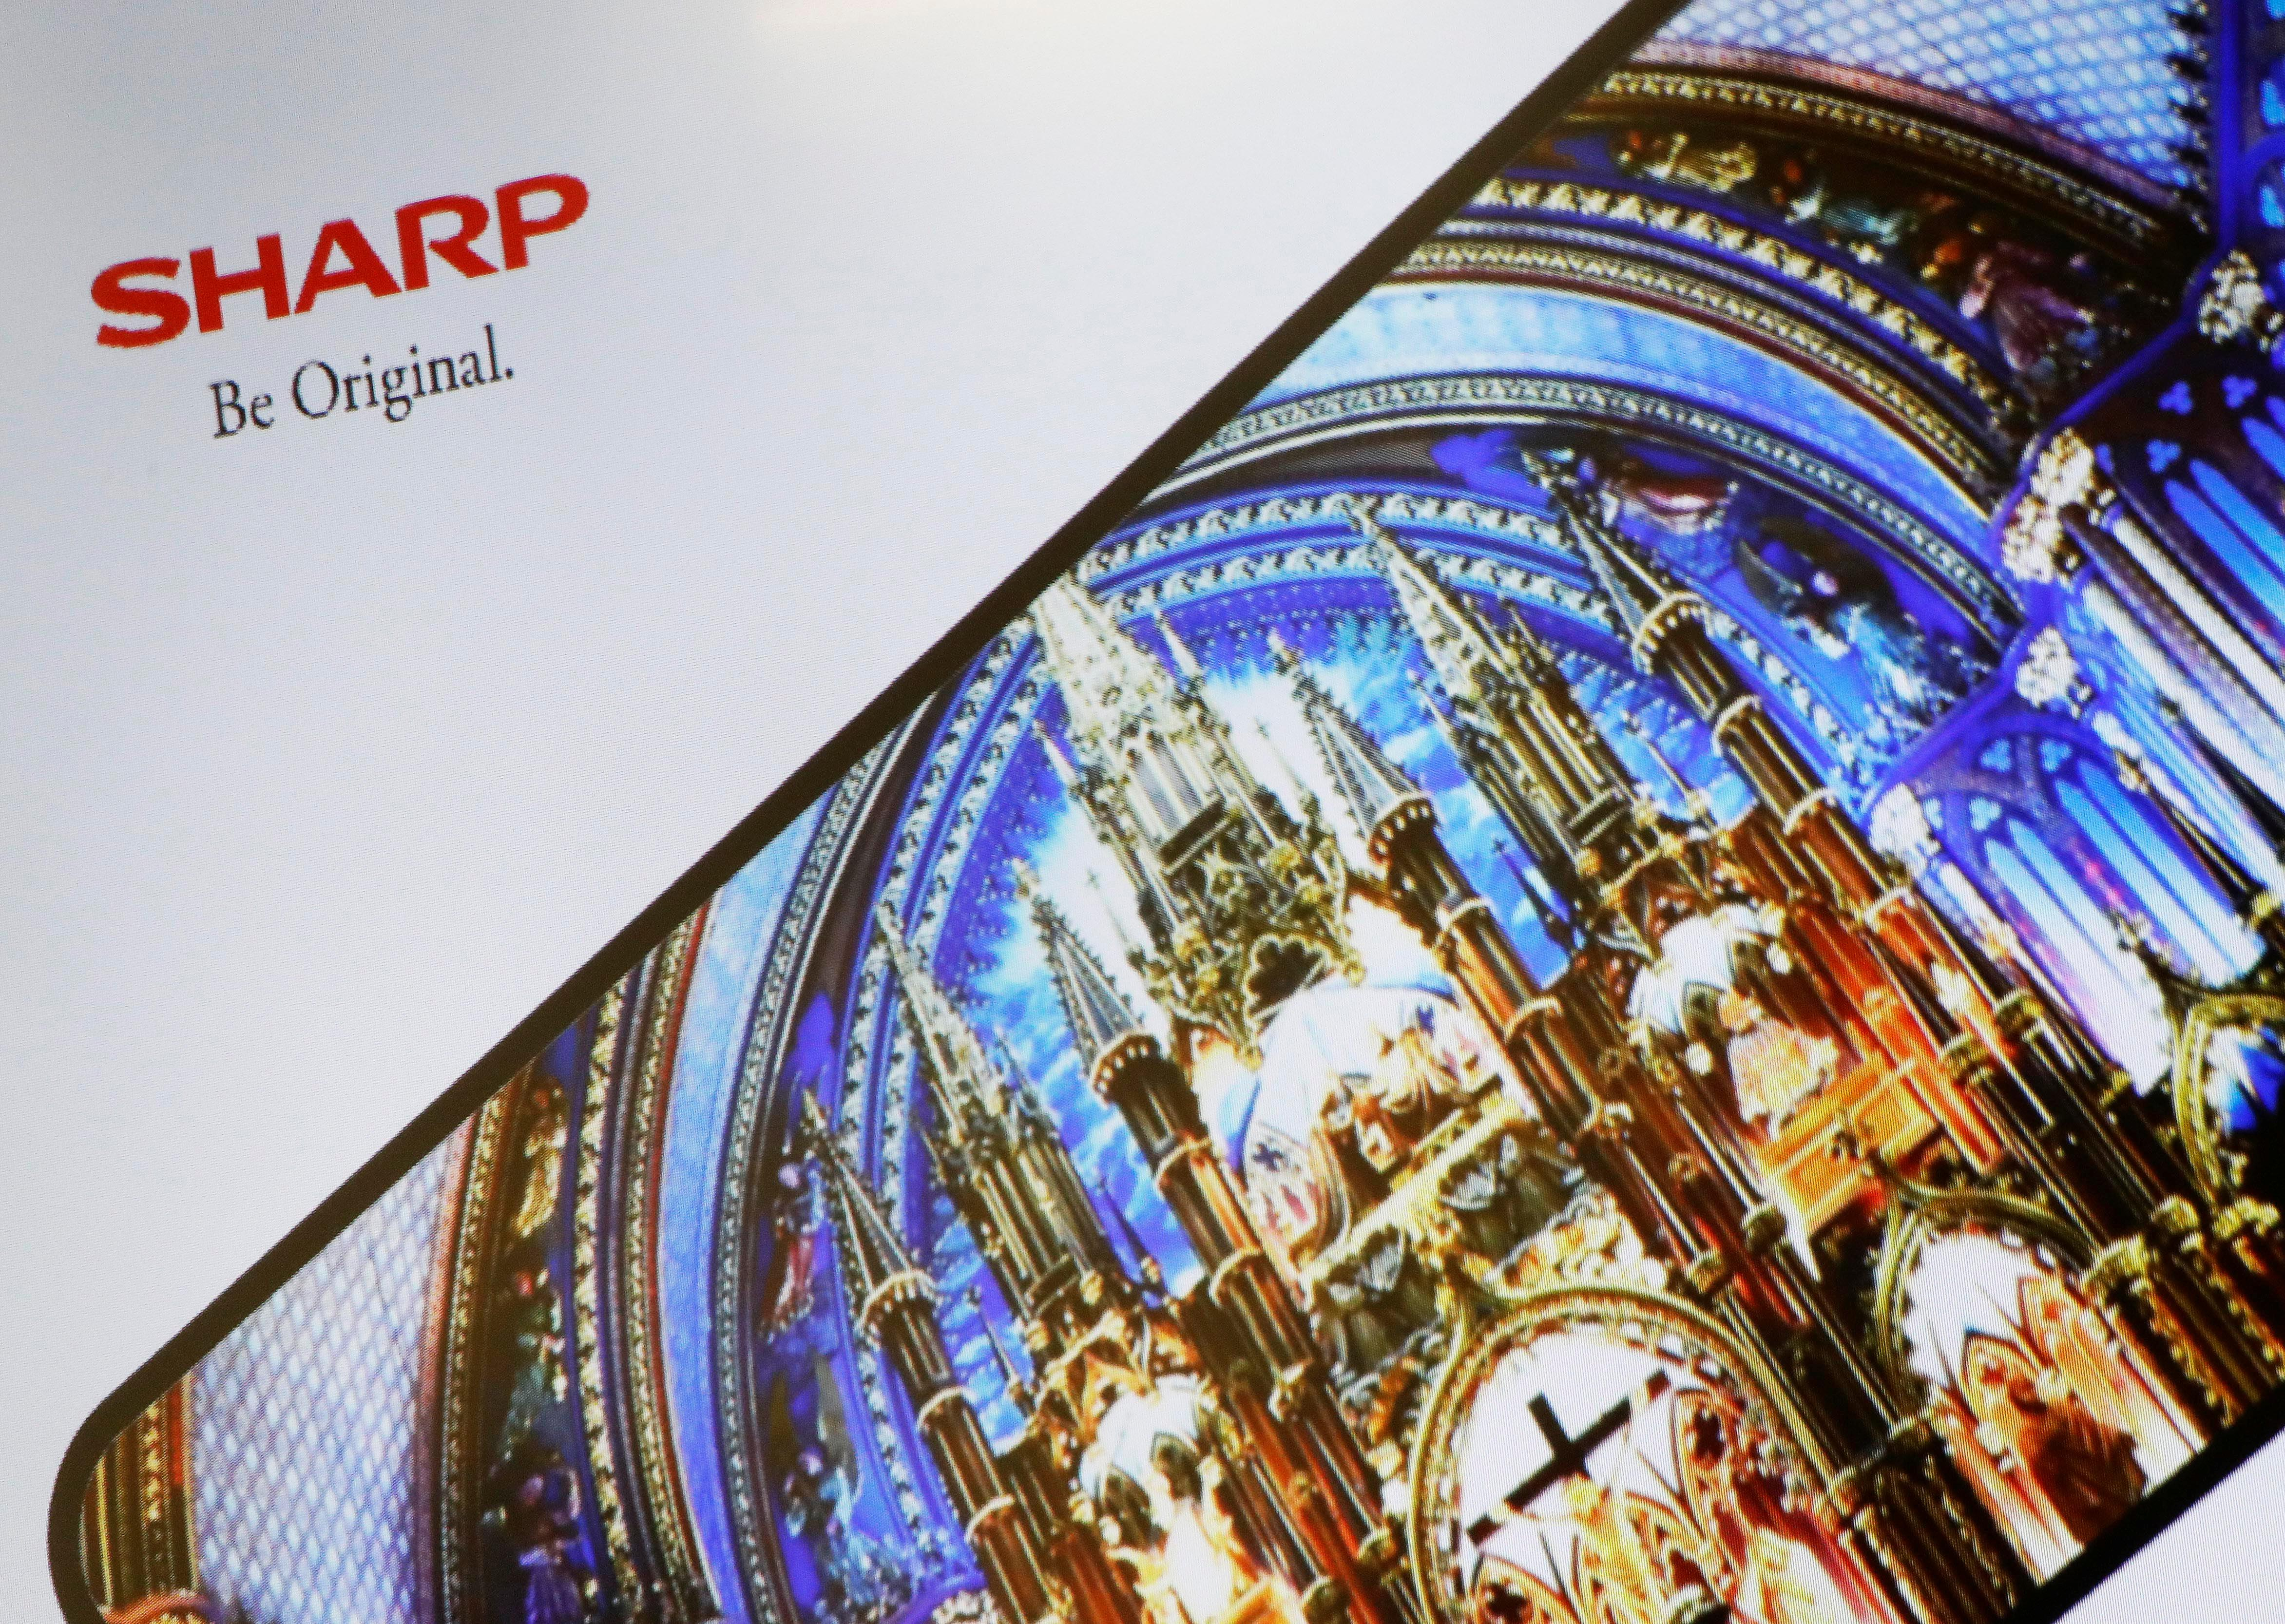 Sharp Corp's logo is pictured at its President Tai Jeng-wu's news conference in Tokyo, Japan December 7, 2017. Kim Kyung-Hoon